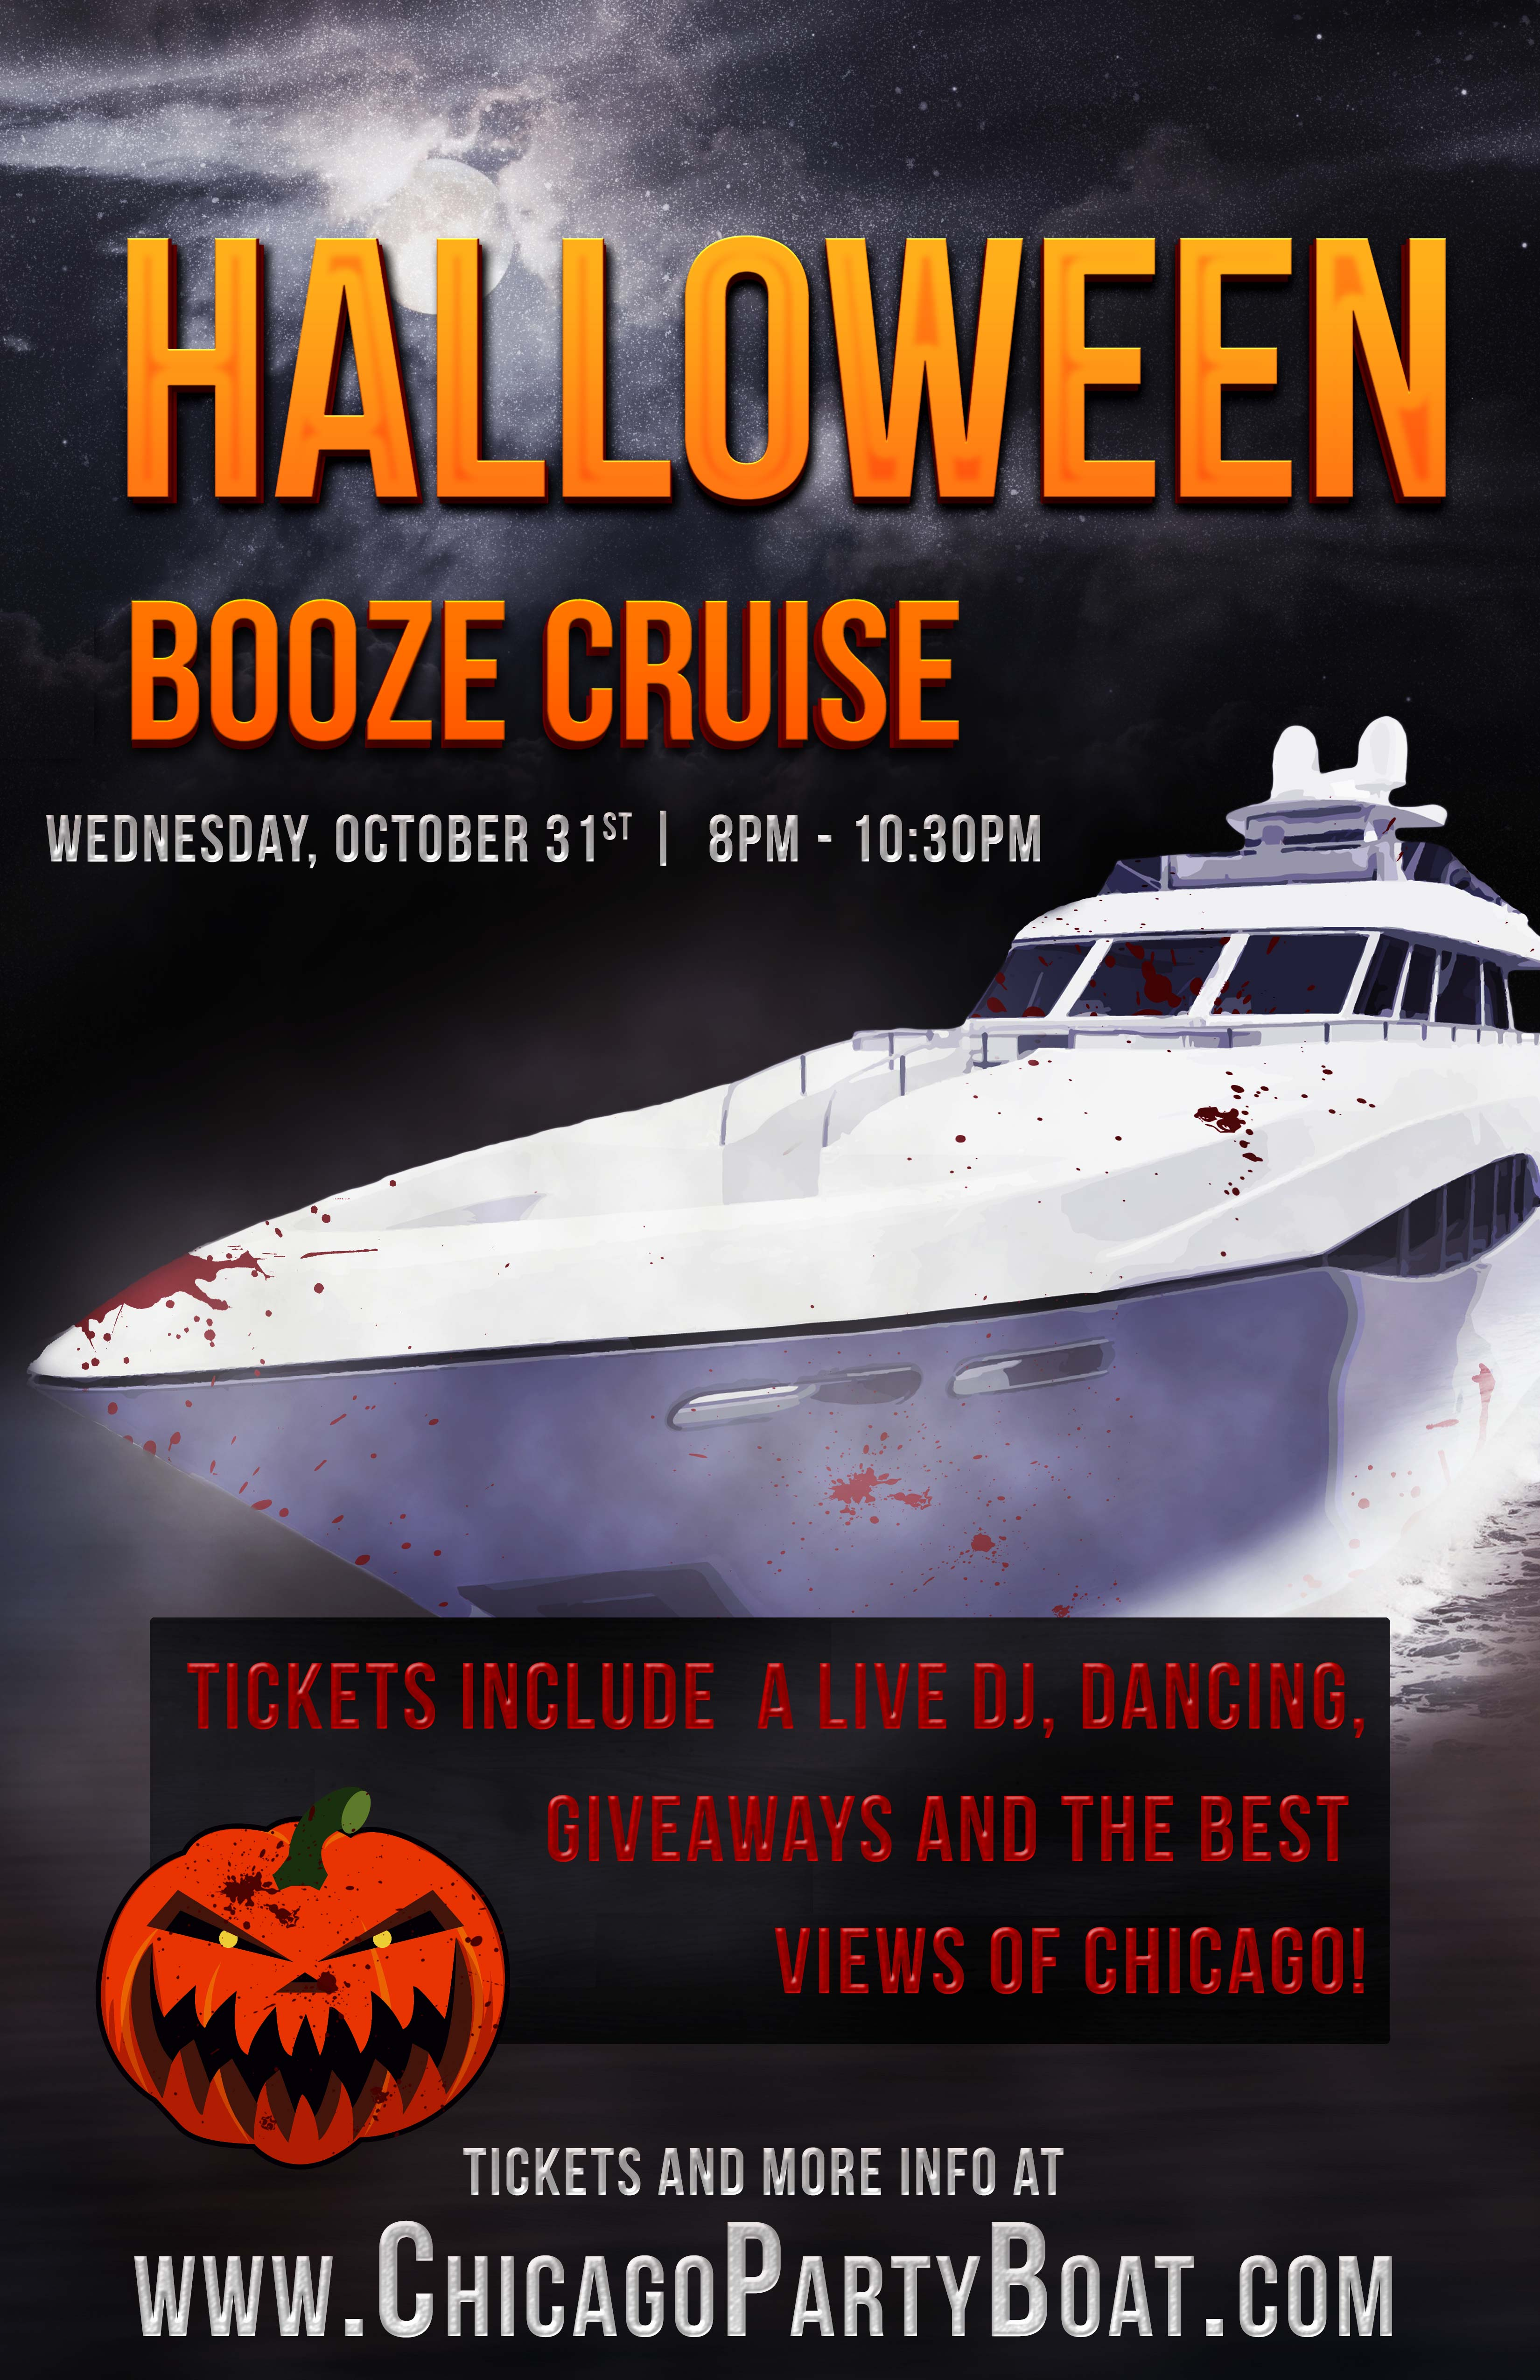 Halloween Booze Cruise Party - Tickets include a Live DJ, Dancing, Giveaways, and the best views of Chicago!